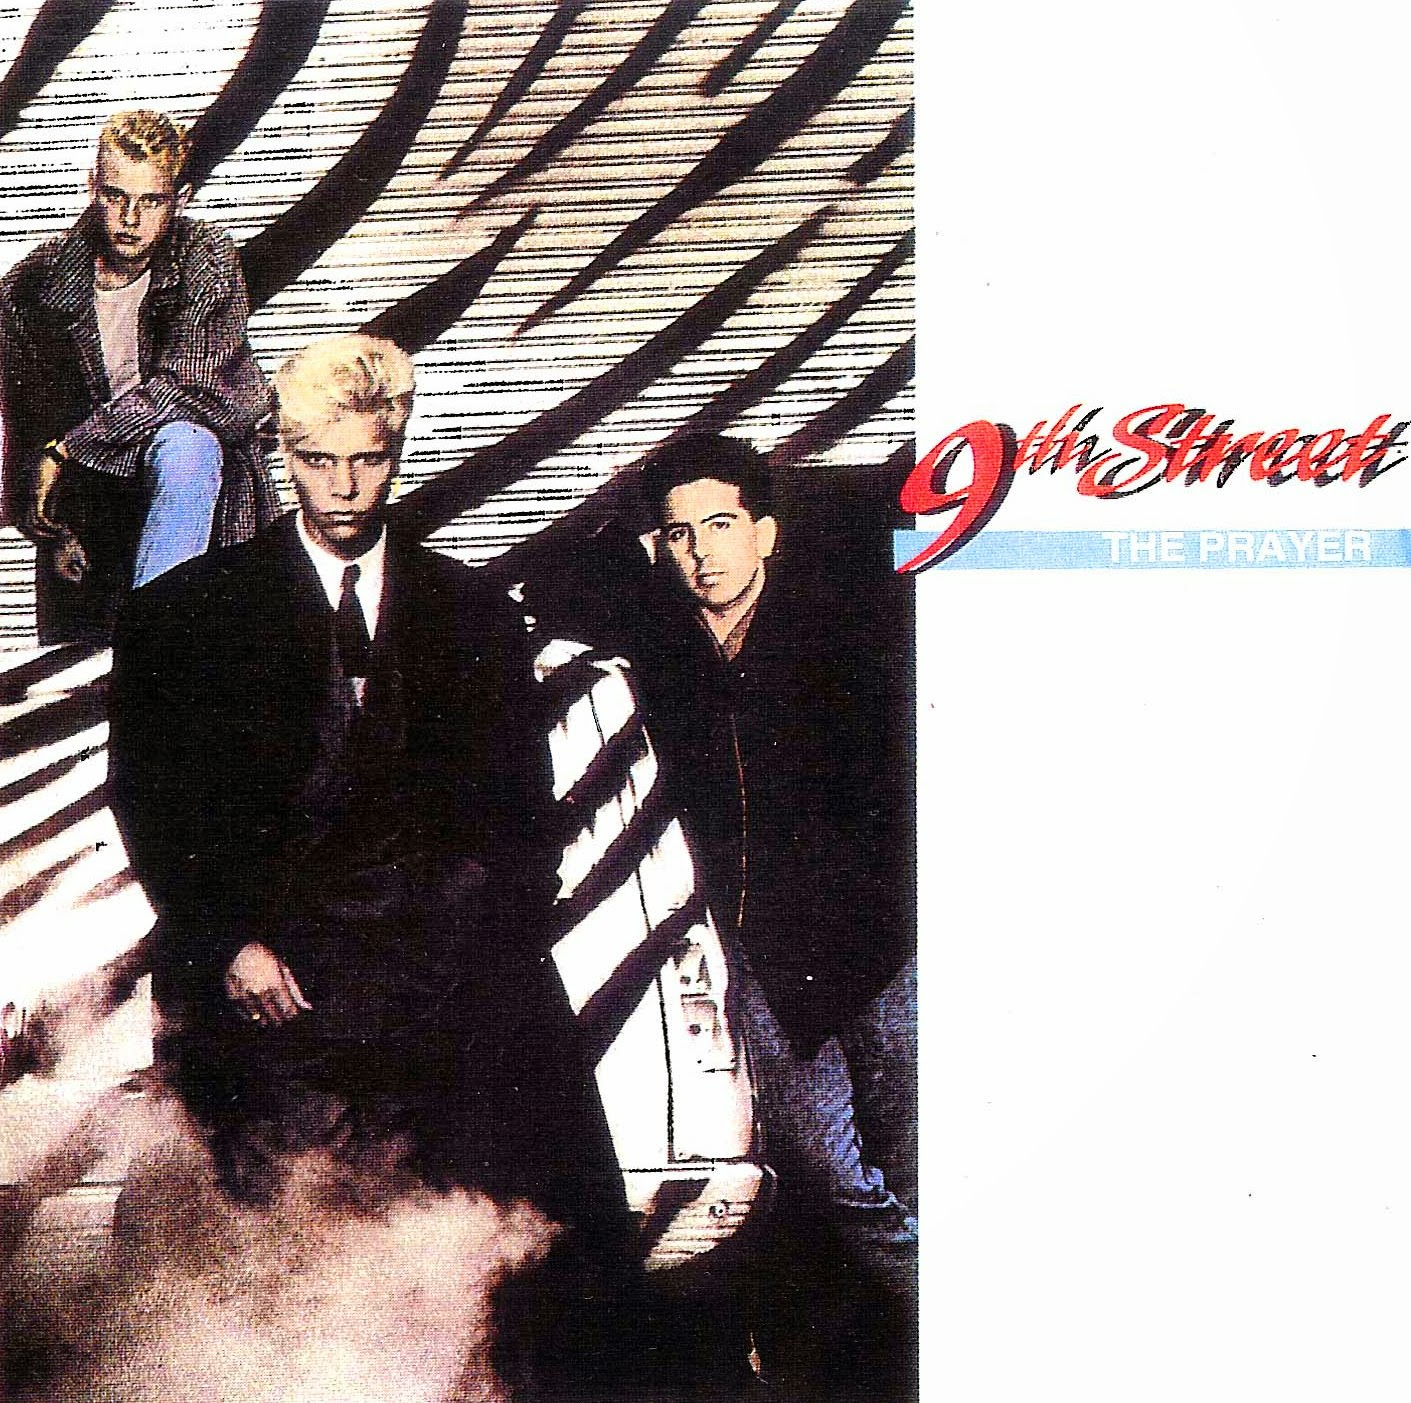 9th Street The Prayer 1989 aor melodic rock hi tech blogspot full albums bands